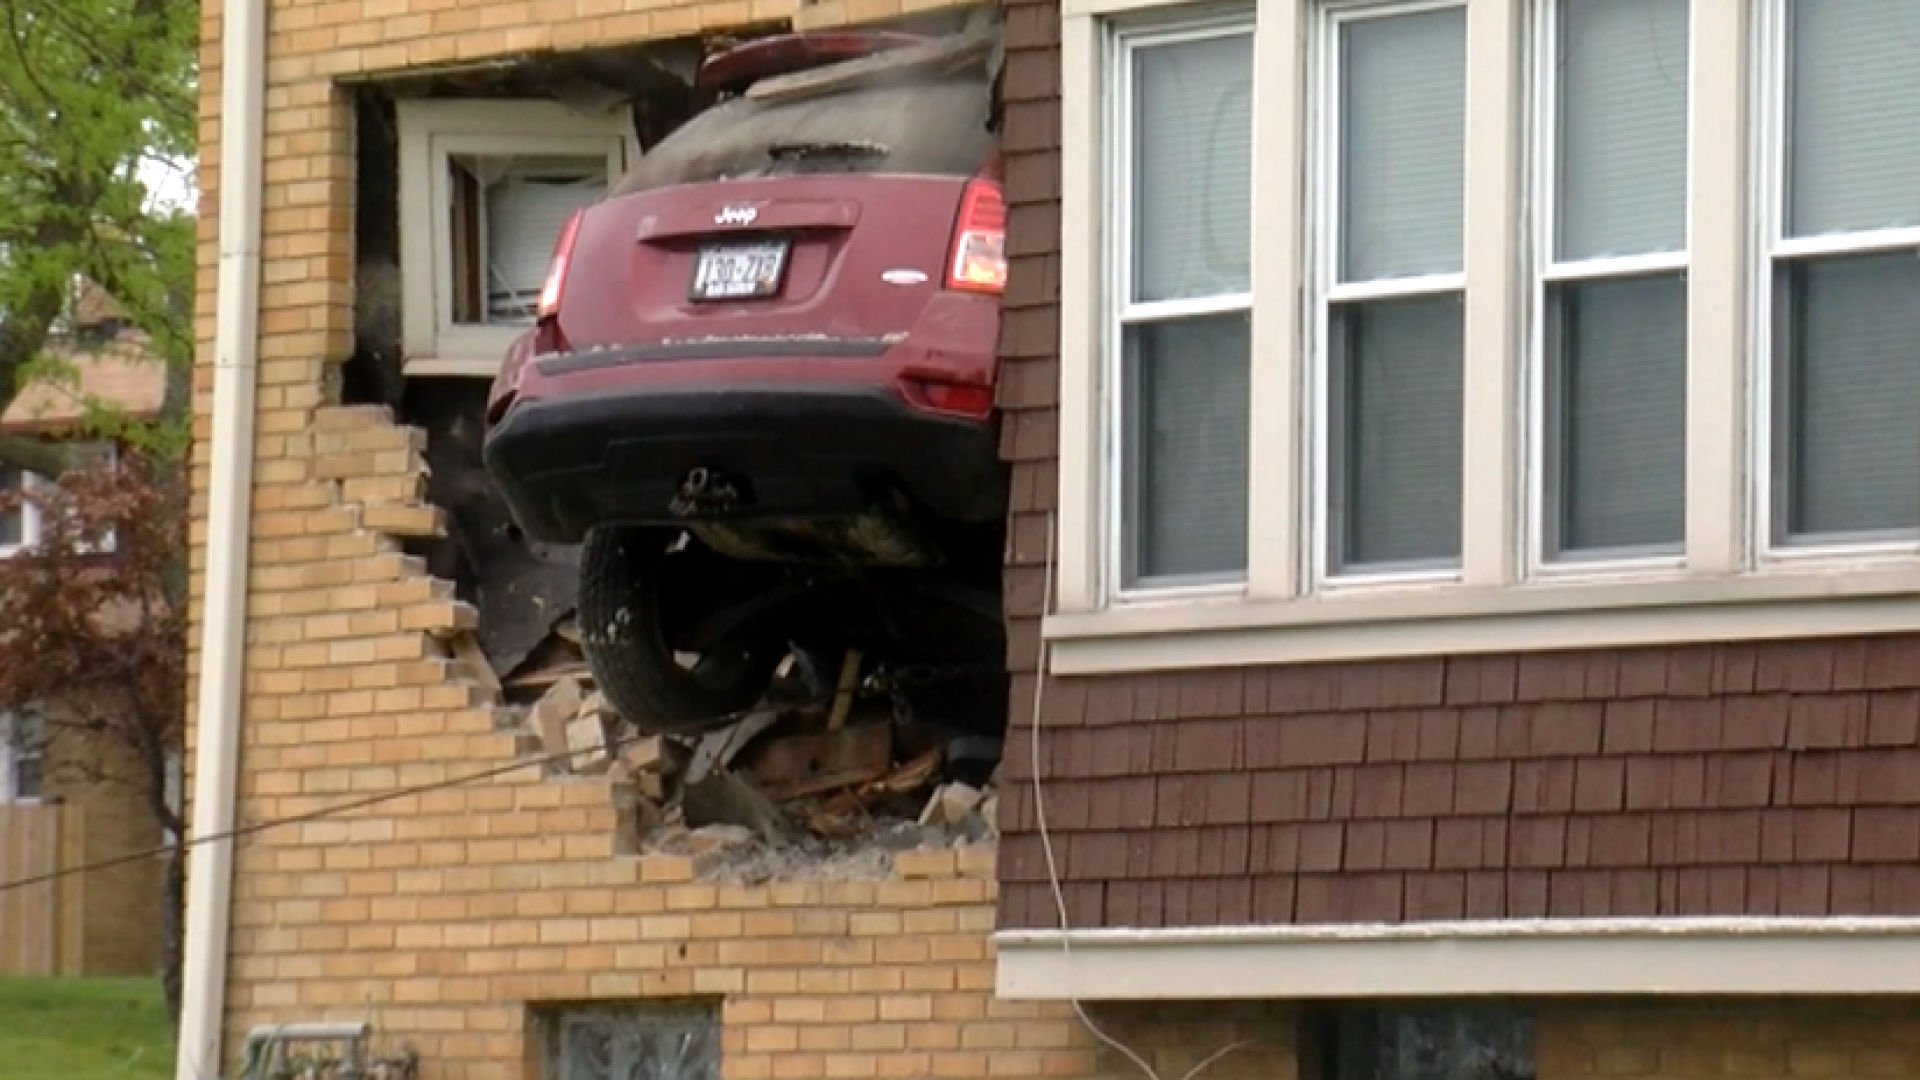 The driver of this Jeep was cited for inattentive driving.